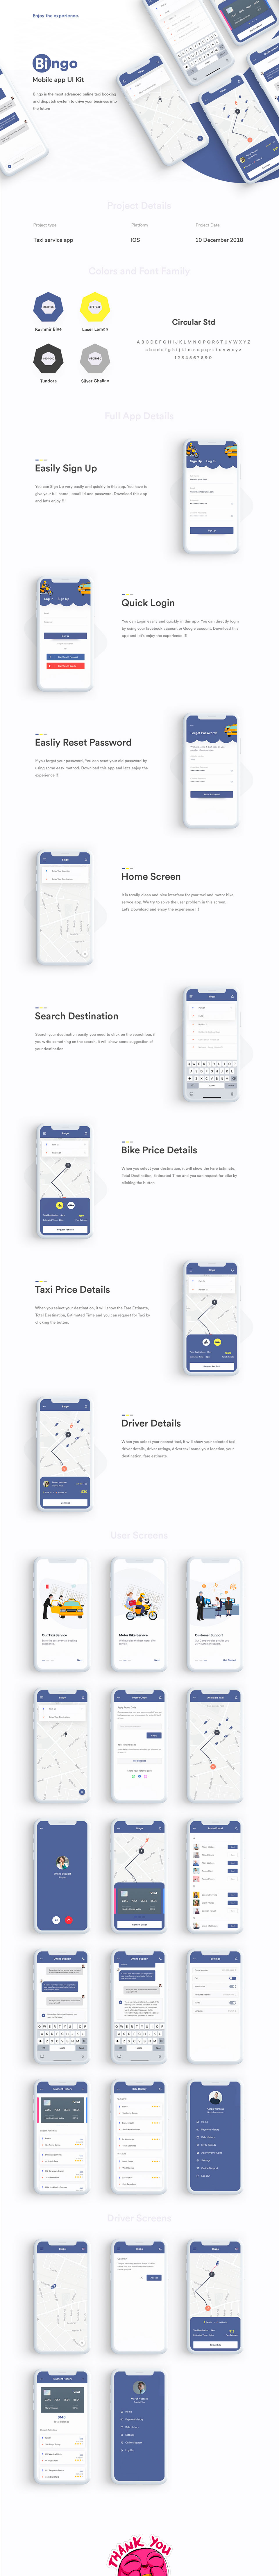 高品质带插画的打车 APP UI KIT [Sketch,PSD,XD,Fig]